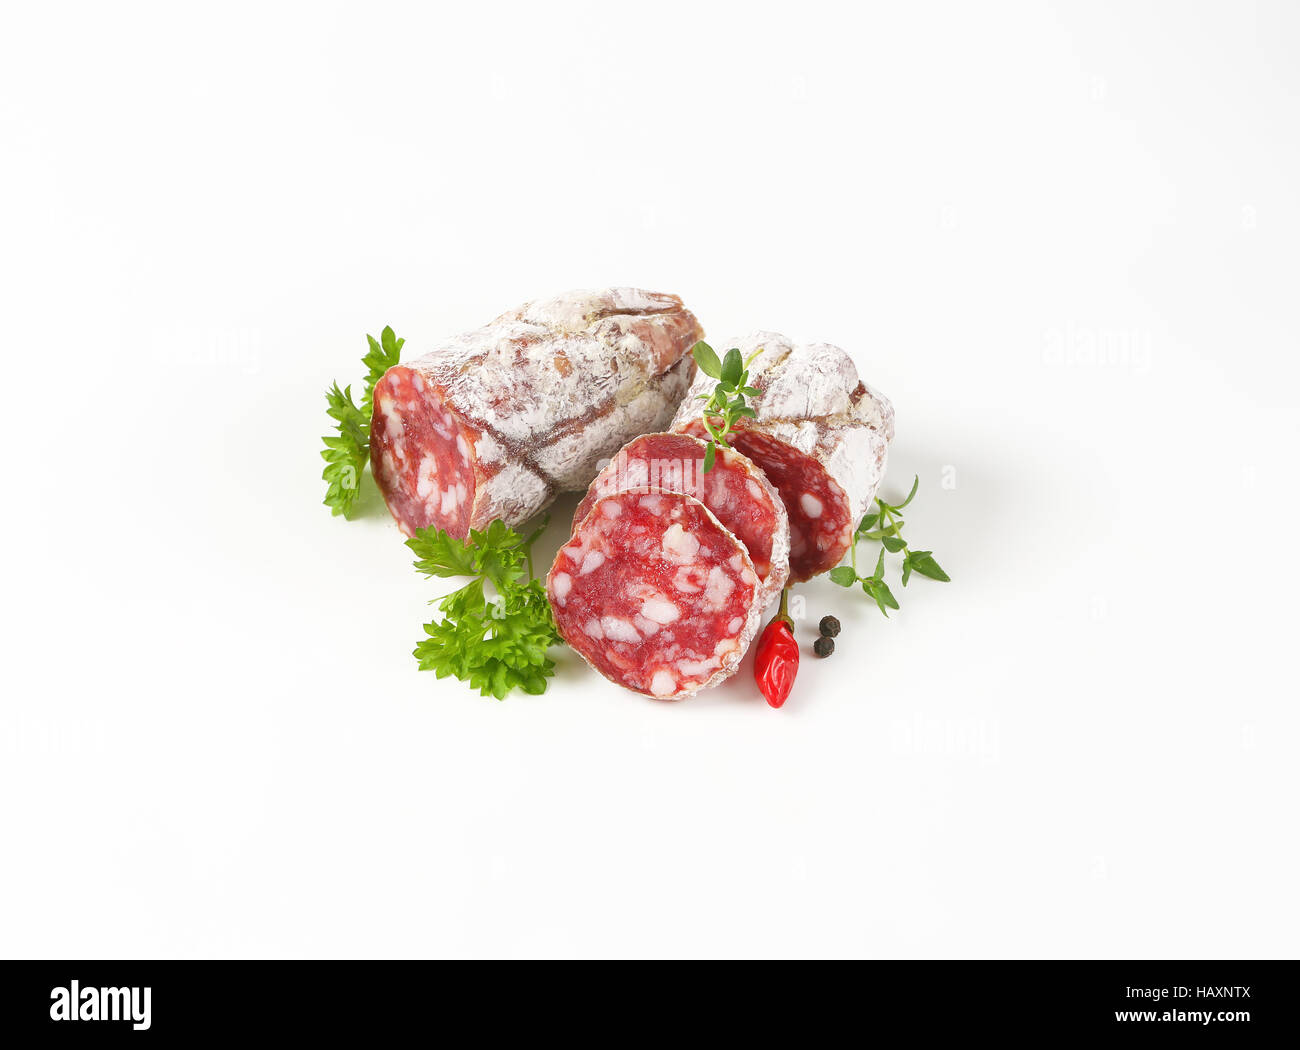 French Saucisson Sec - dry cured sausage - Stock Image